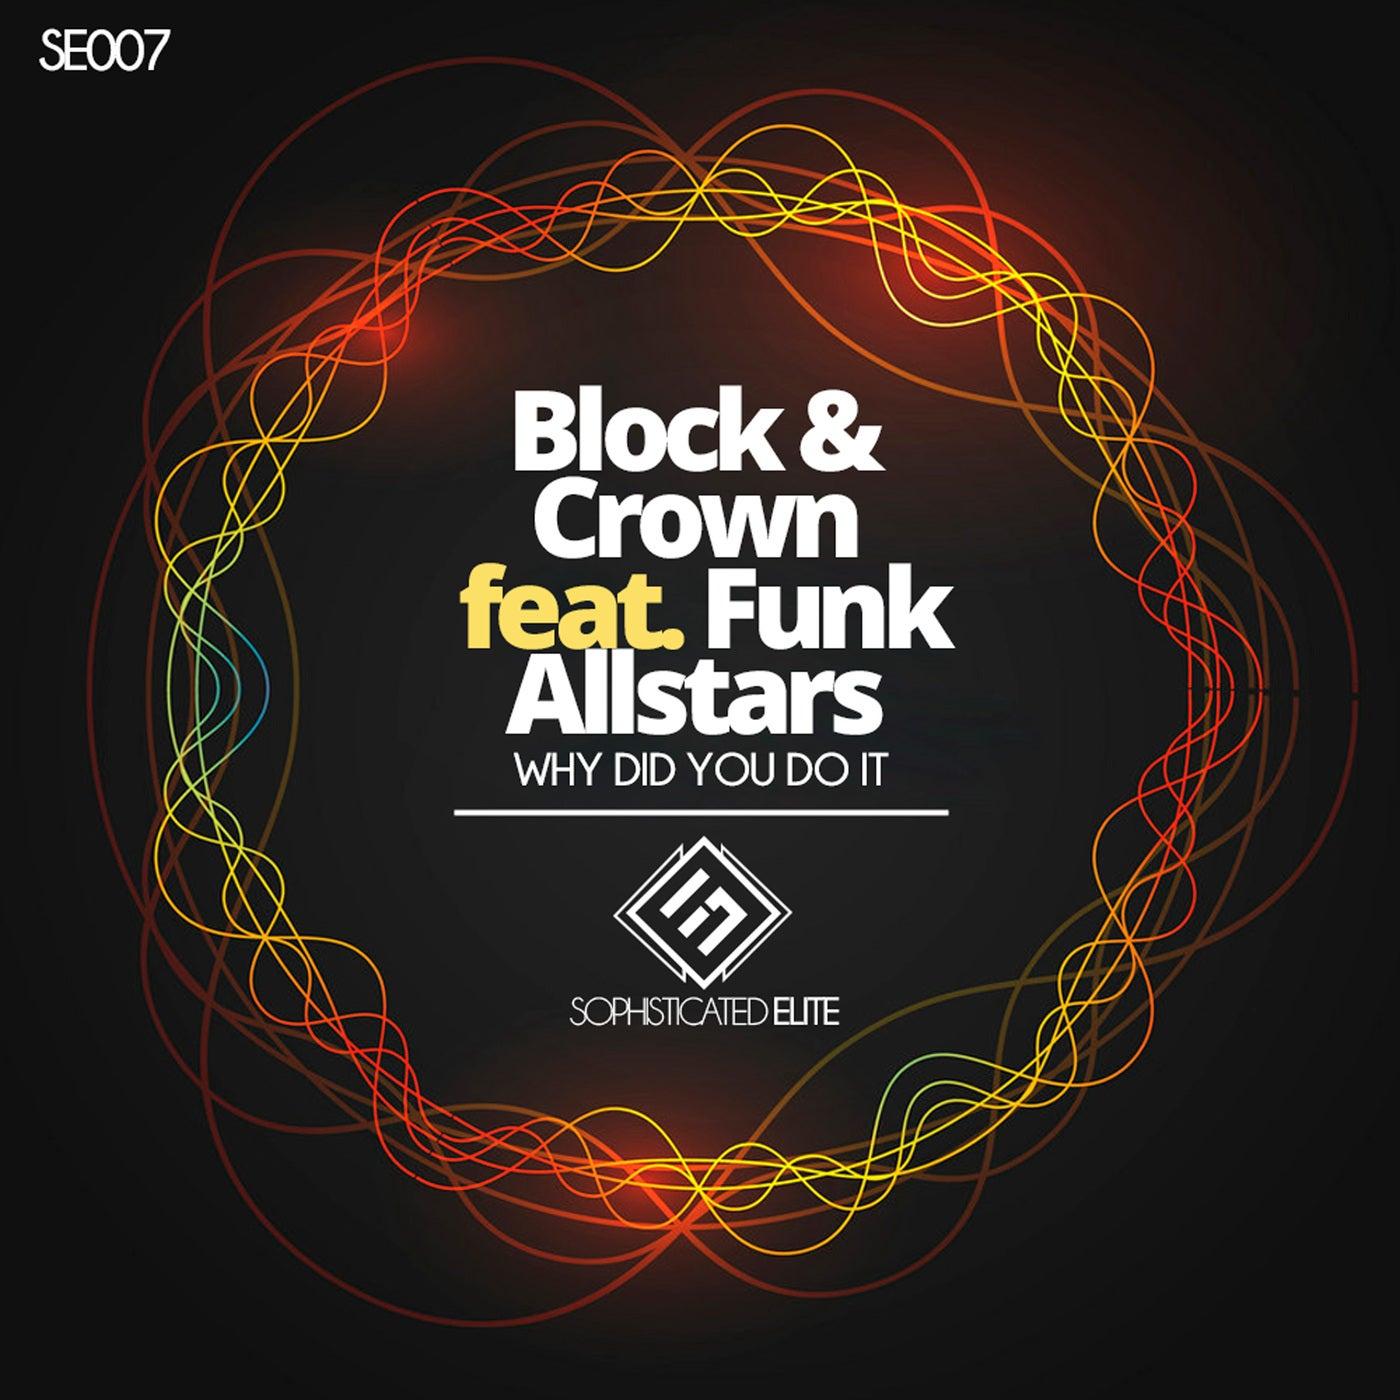 Why Did You Do It Feat. Funk Allstars (Original Mix)